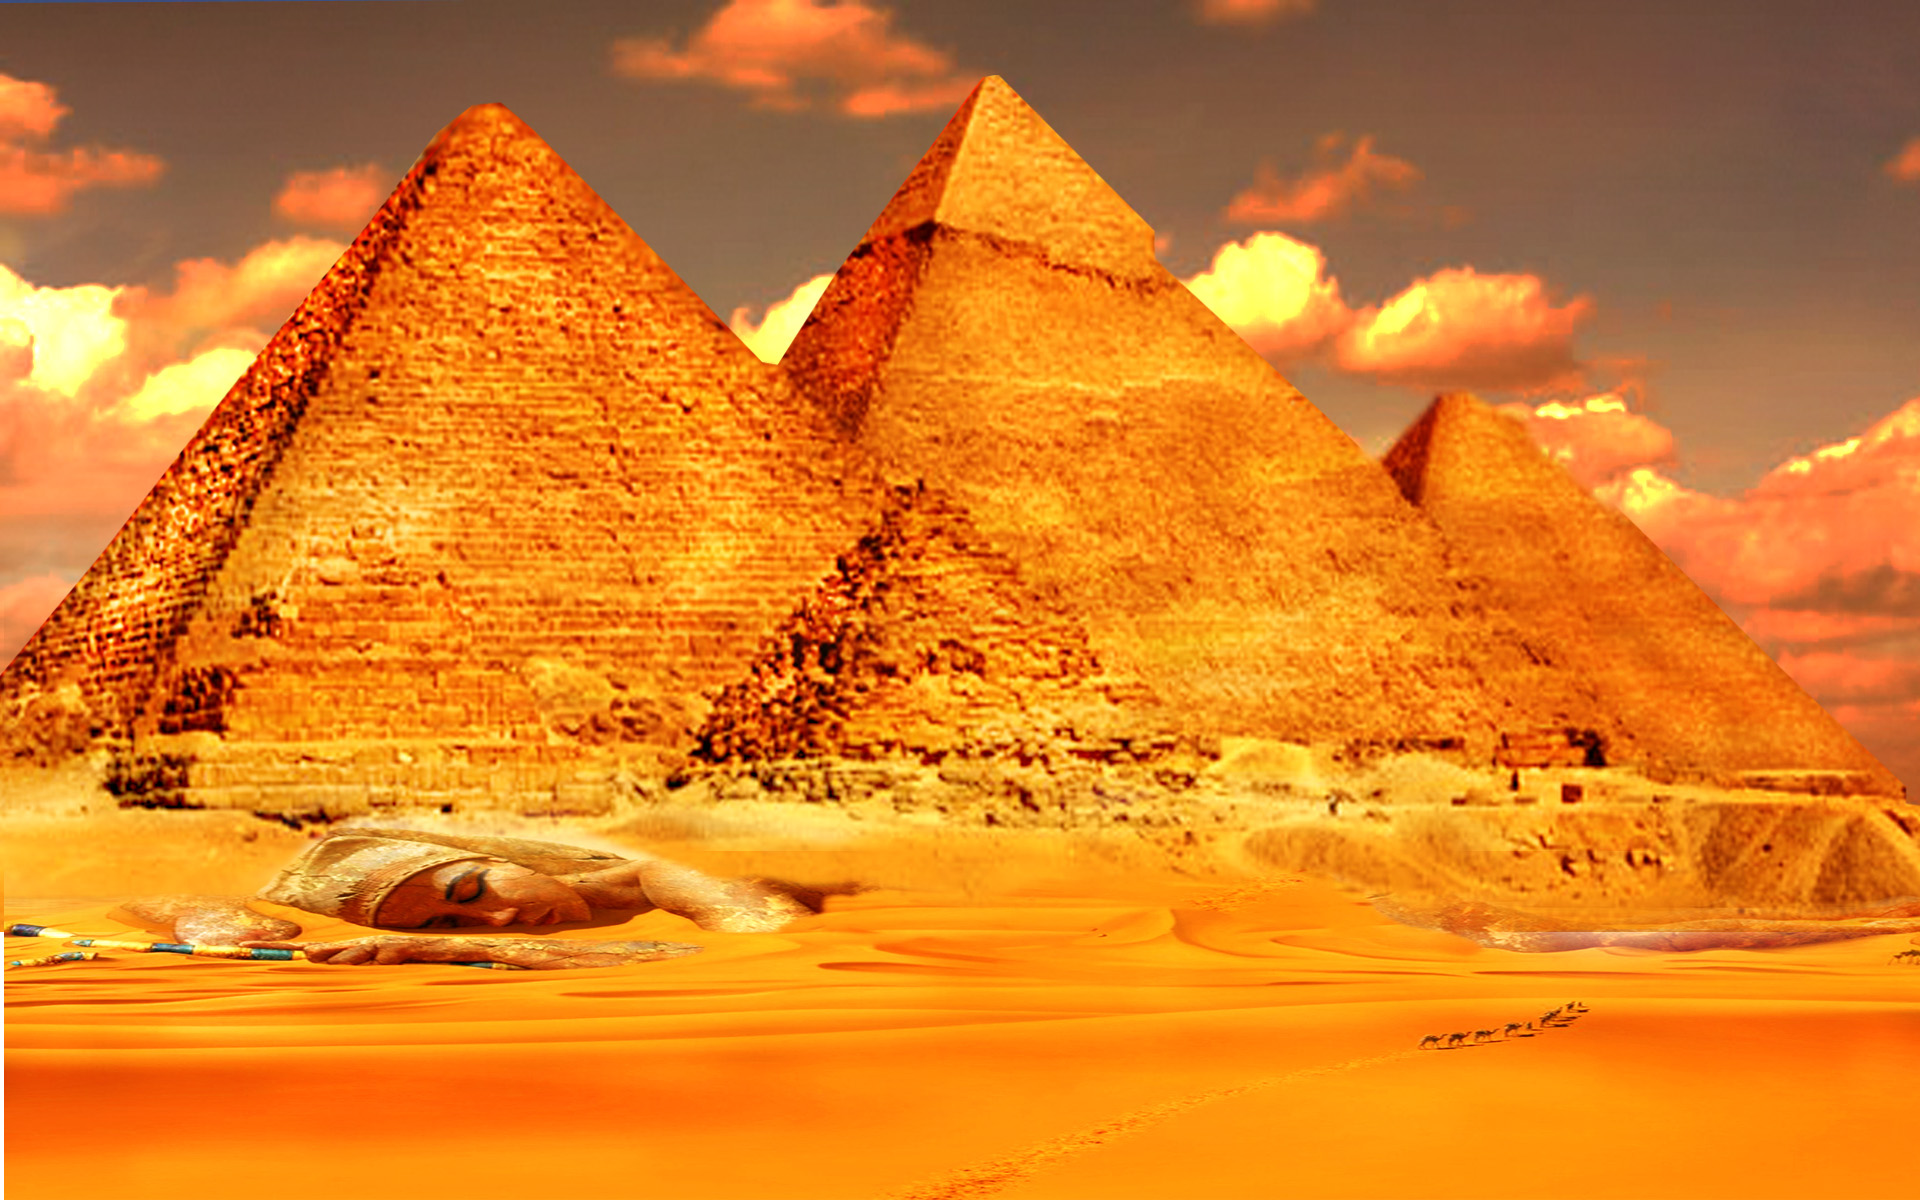 Pyramid wallpaper to inspire you picshunger for 3d wallpaper for home egypt